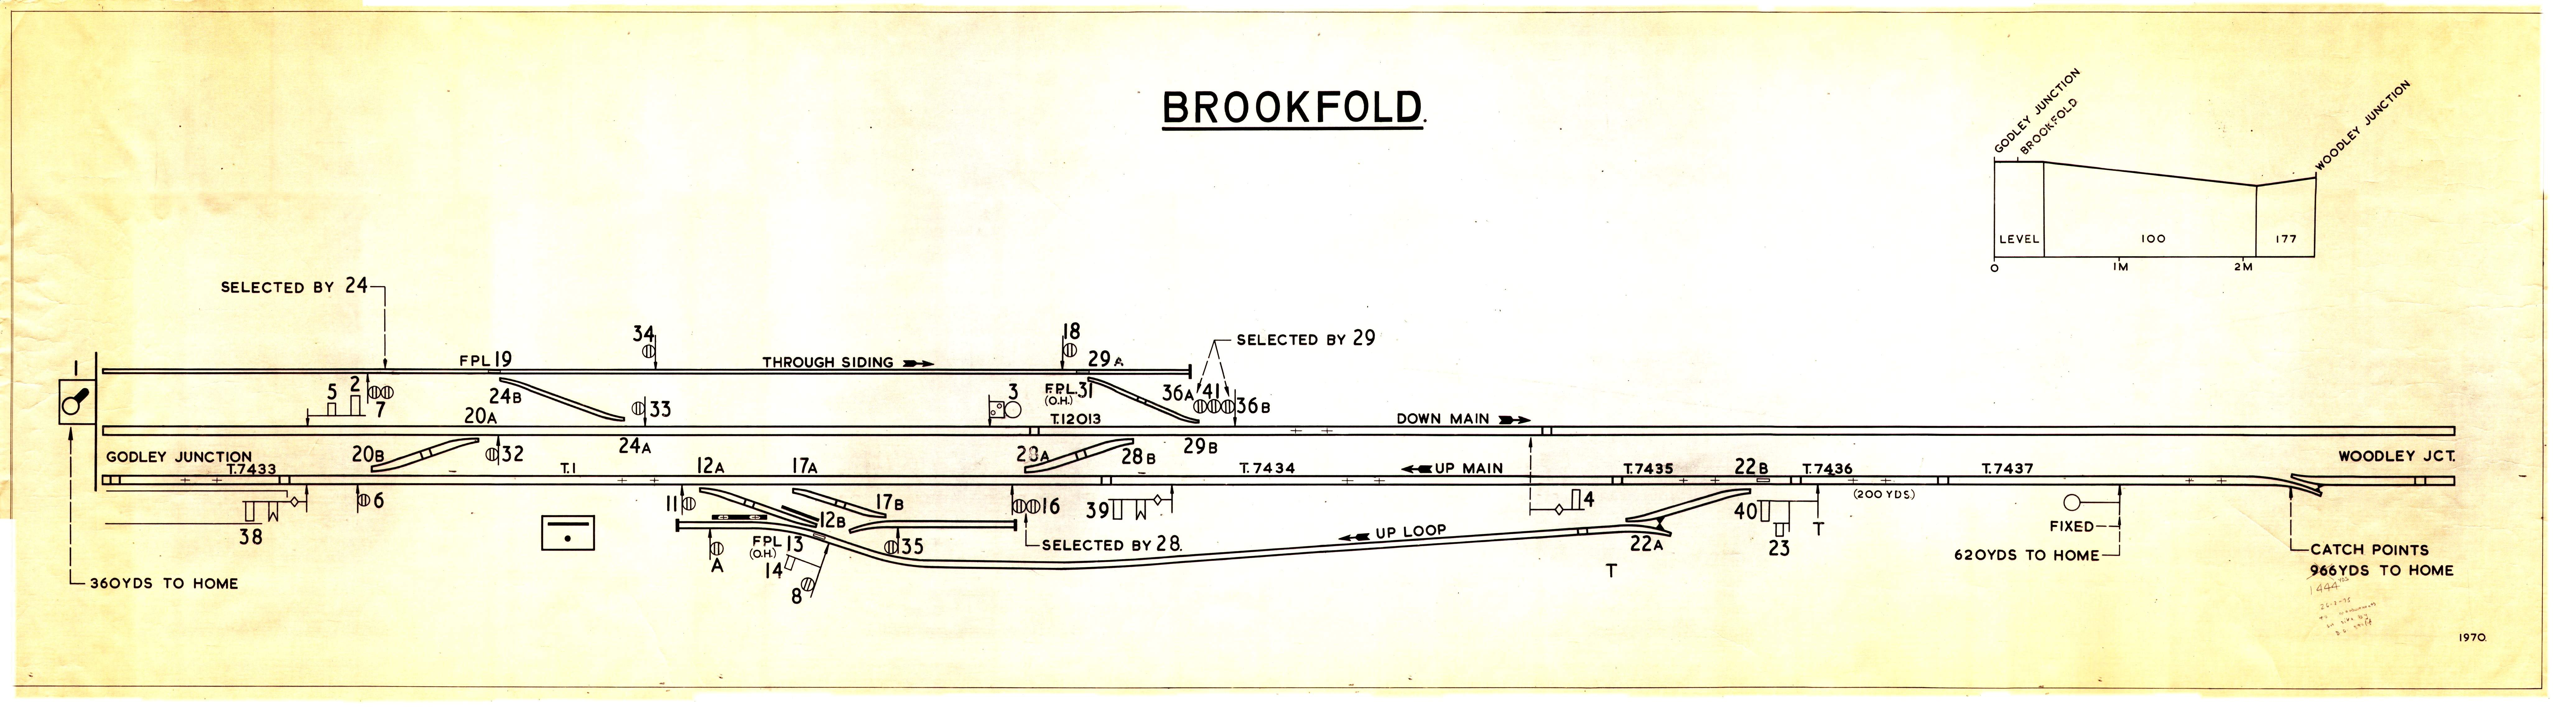 Signal Box Diagrams 1960 Lincoln Wiring Diagram Brookfold Sbd